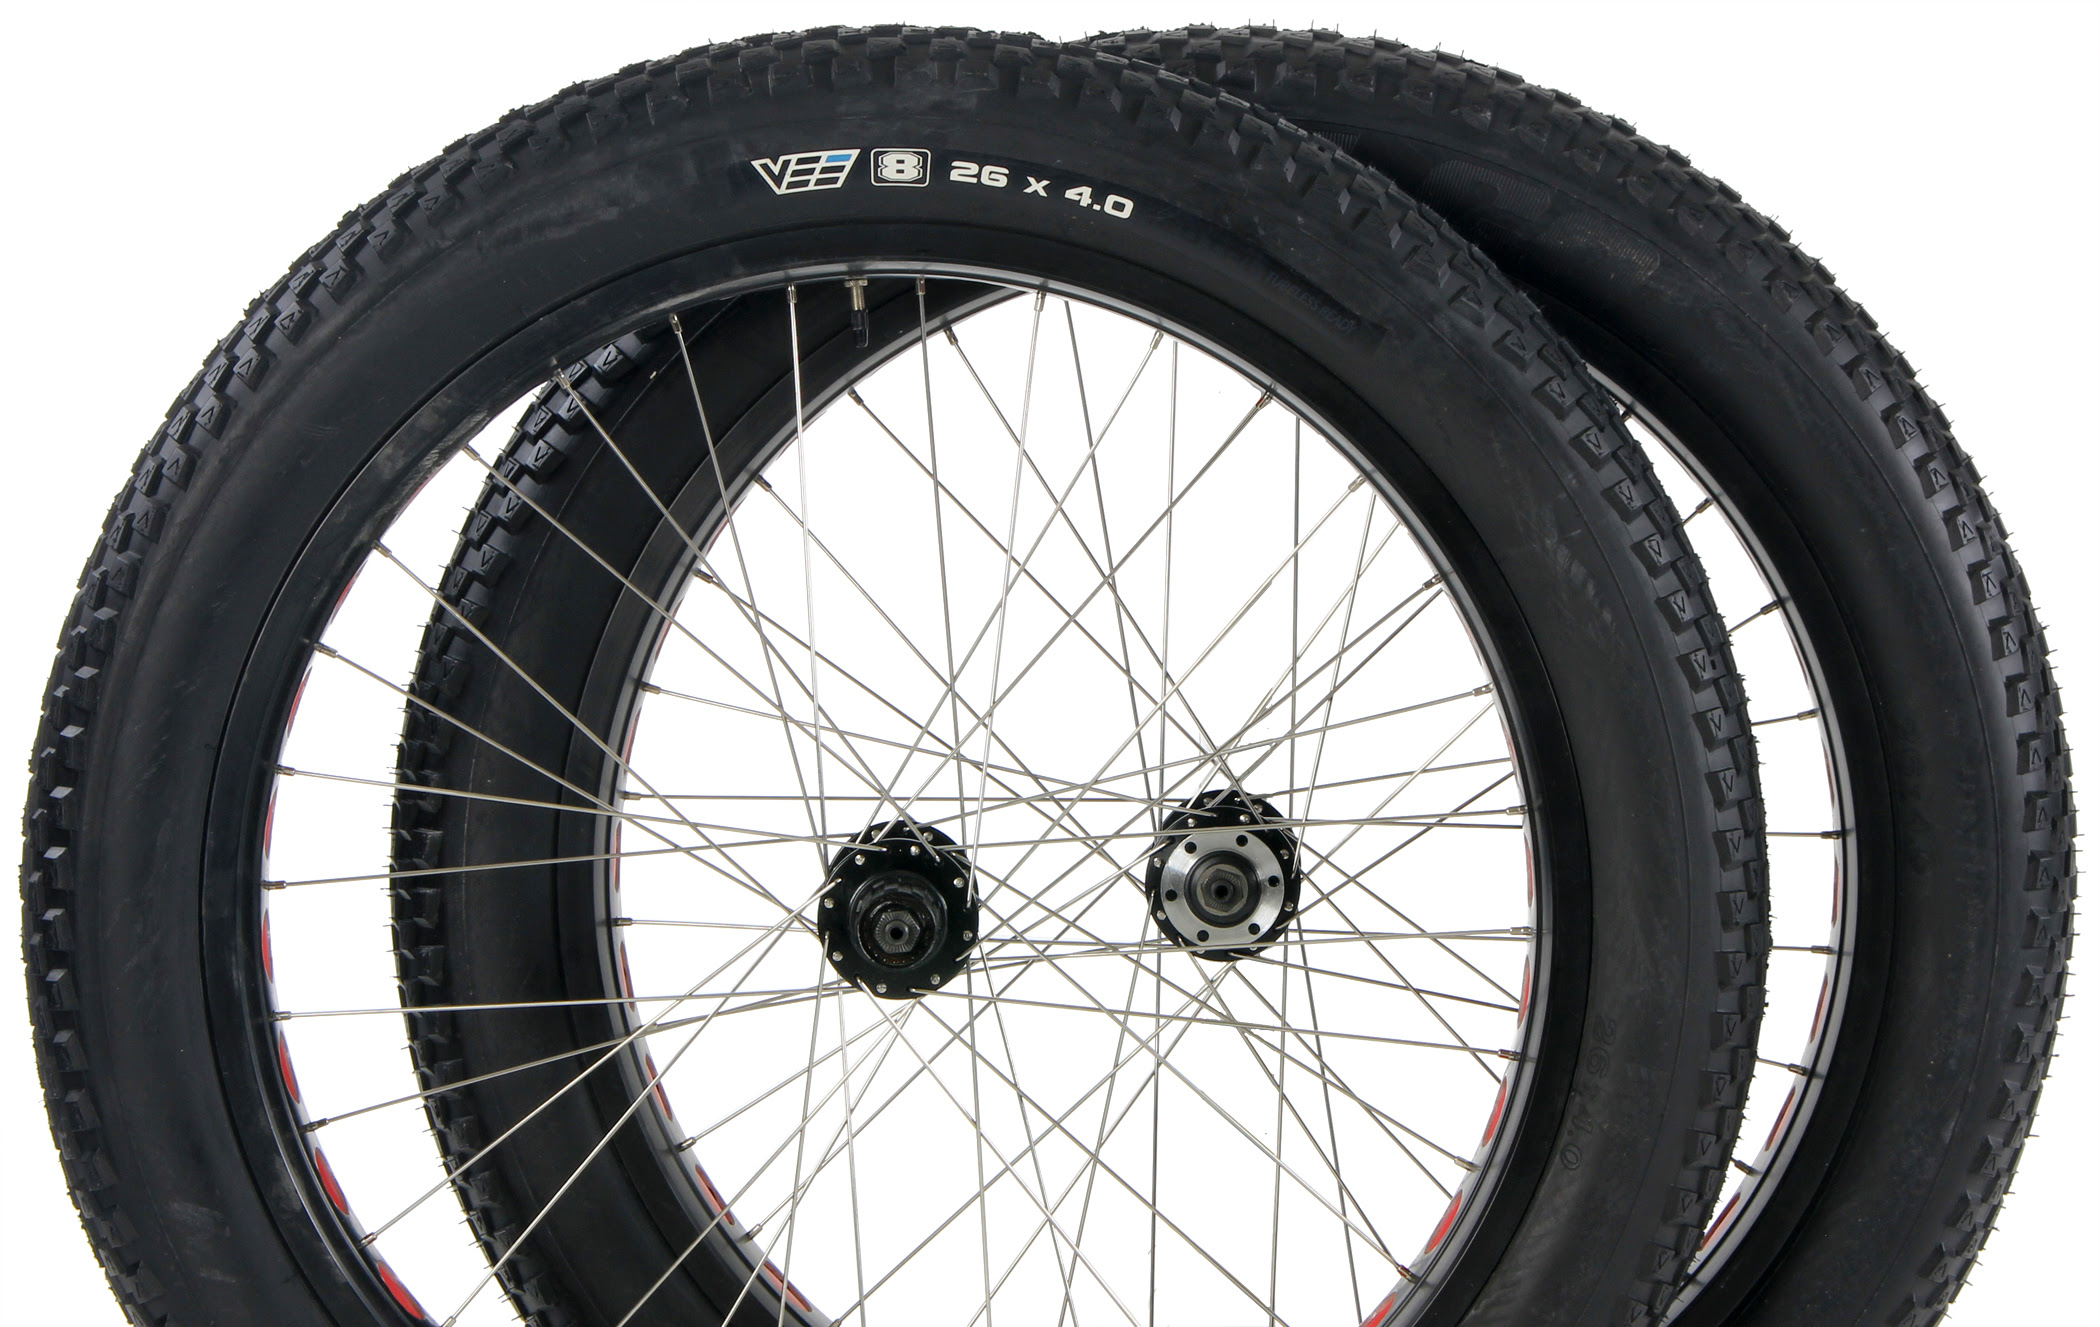 Fat Tires For Cars, Free Ship 48 States Fat Bike Wheelset Free Tires Promo Sale Aluminum Rim Fat Bike Disc Brake Wheelsets With Free Pair Of 120tpi Folding Bead Vee Rubber, Fat Tires For Cars